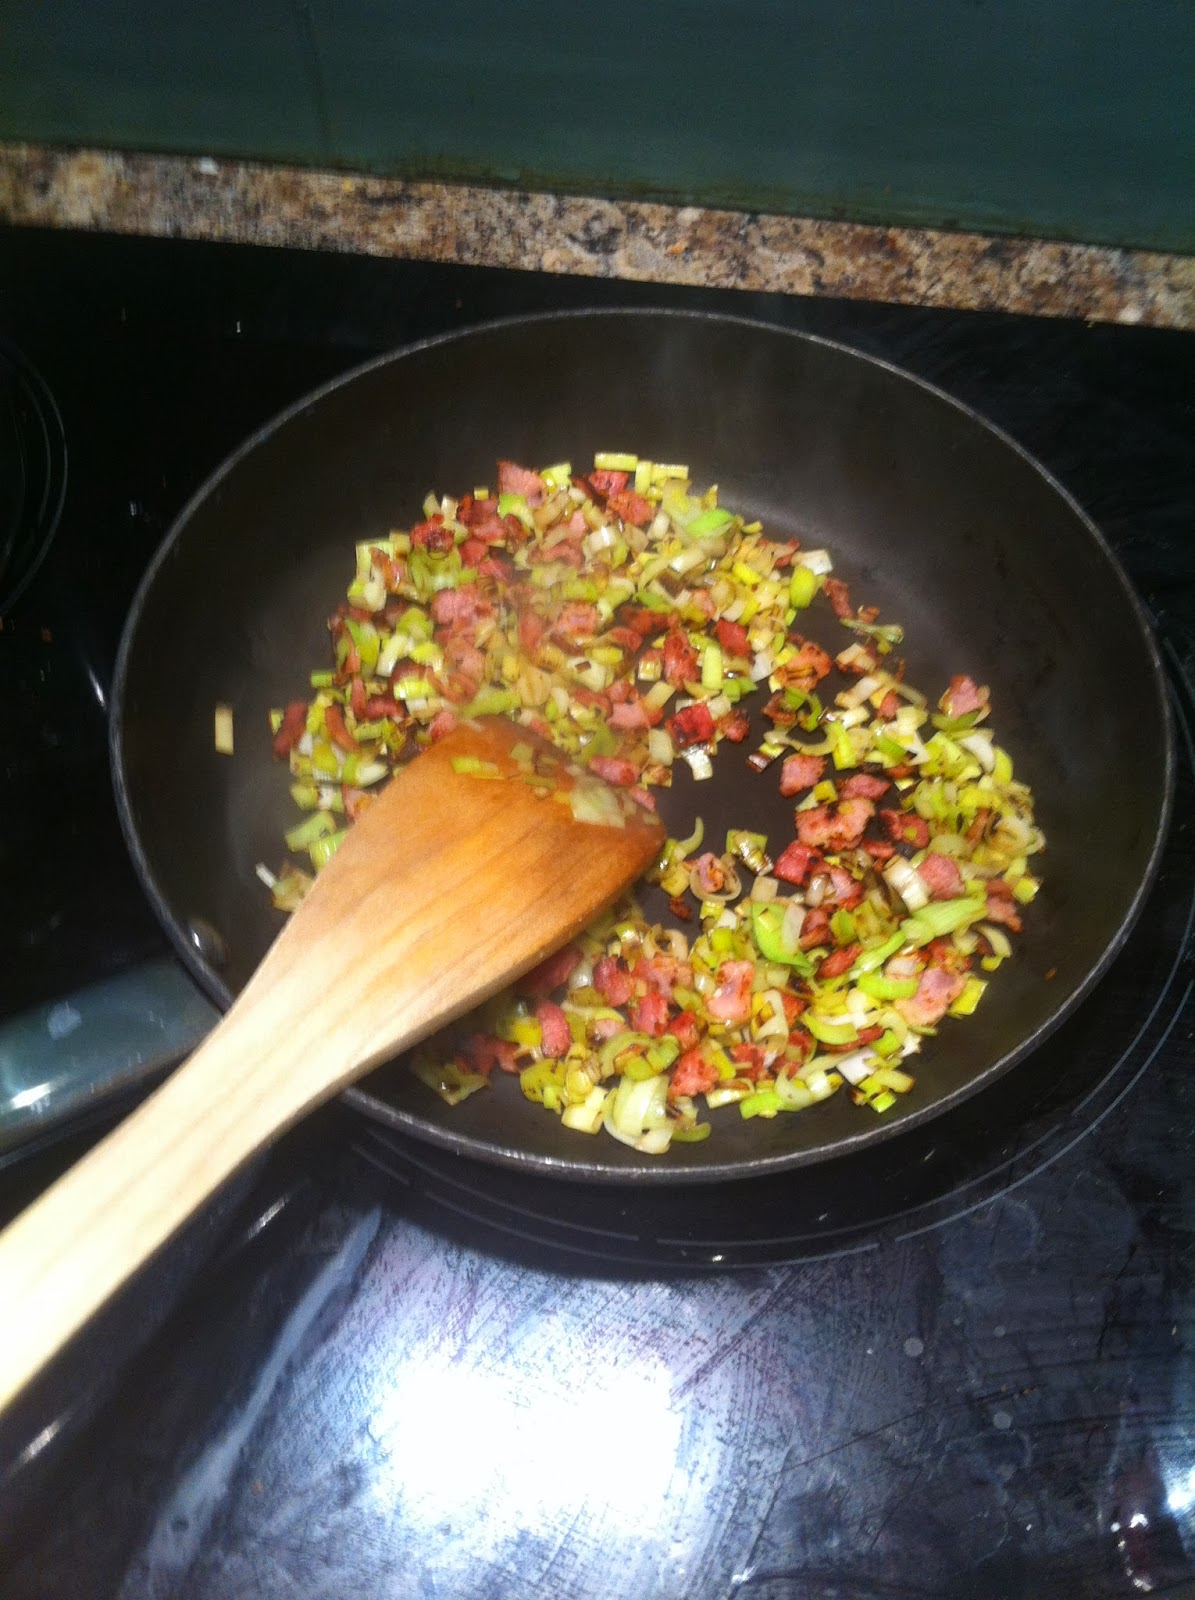 Frying leeks and bacon